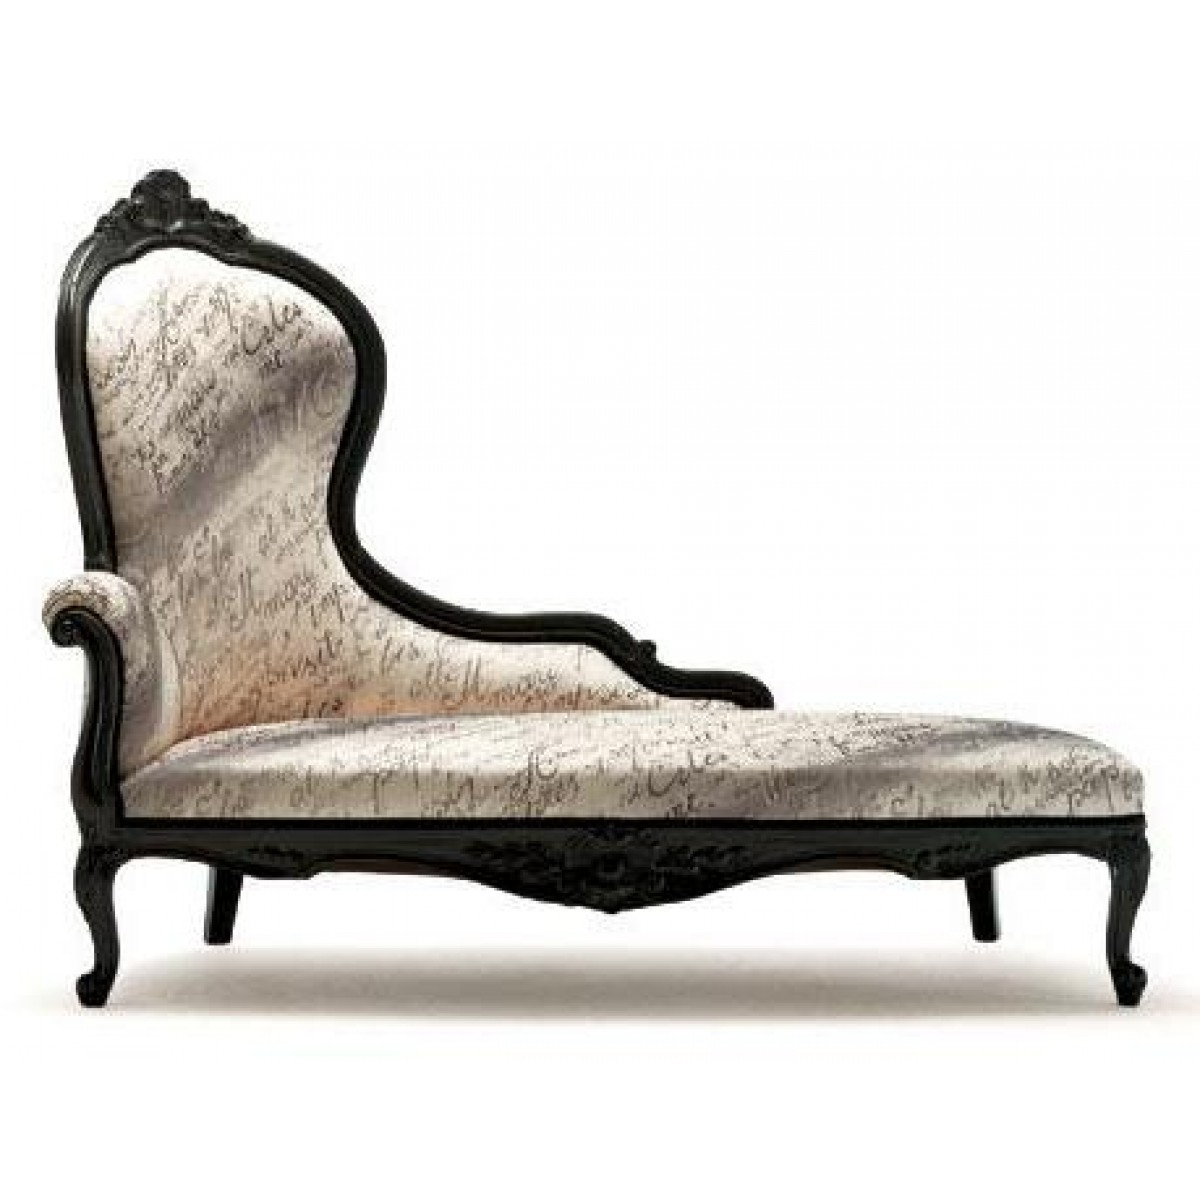 Chaise Longue Poltrone E Sofà Chaise Longue I Sofa Moda Outlet Desout